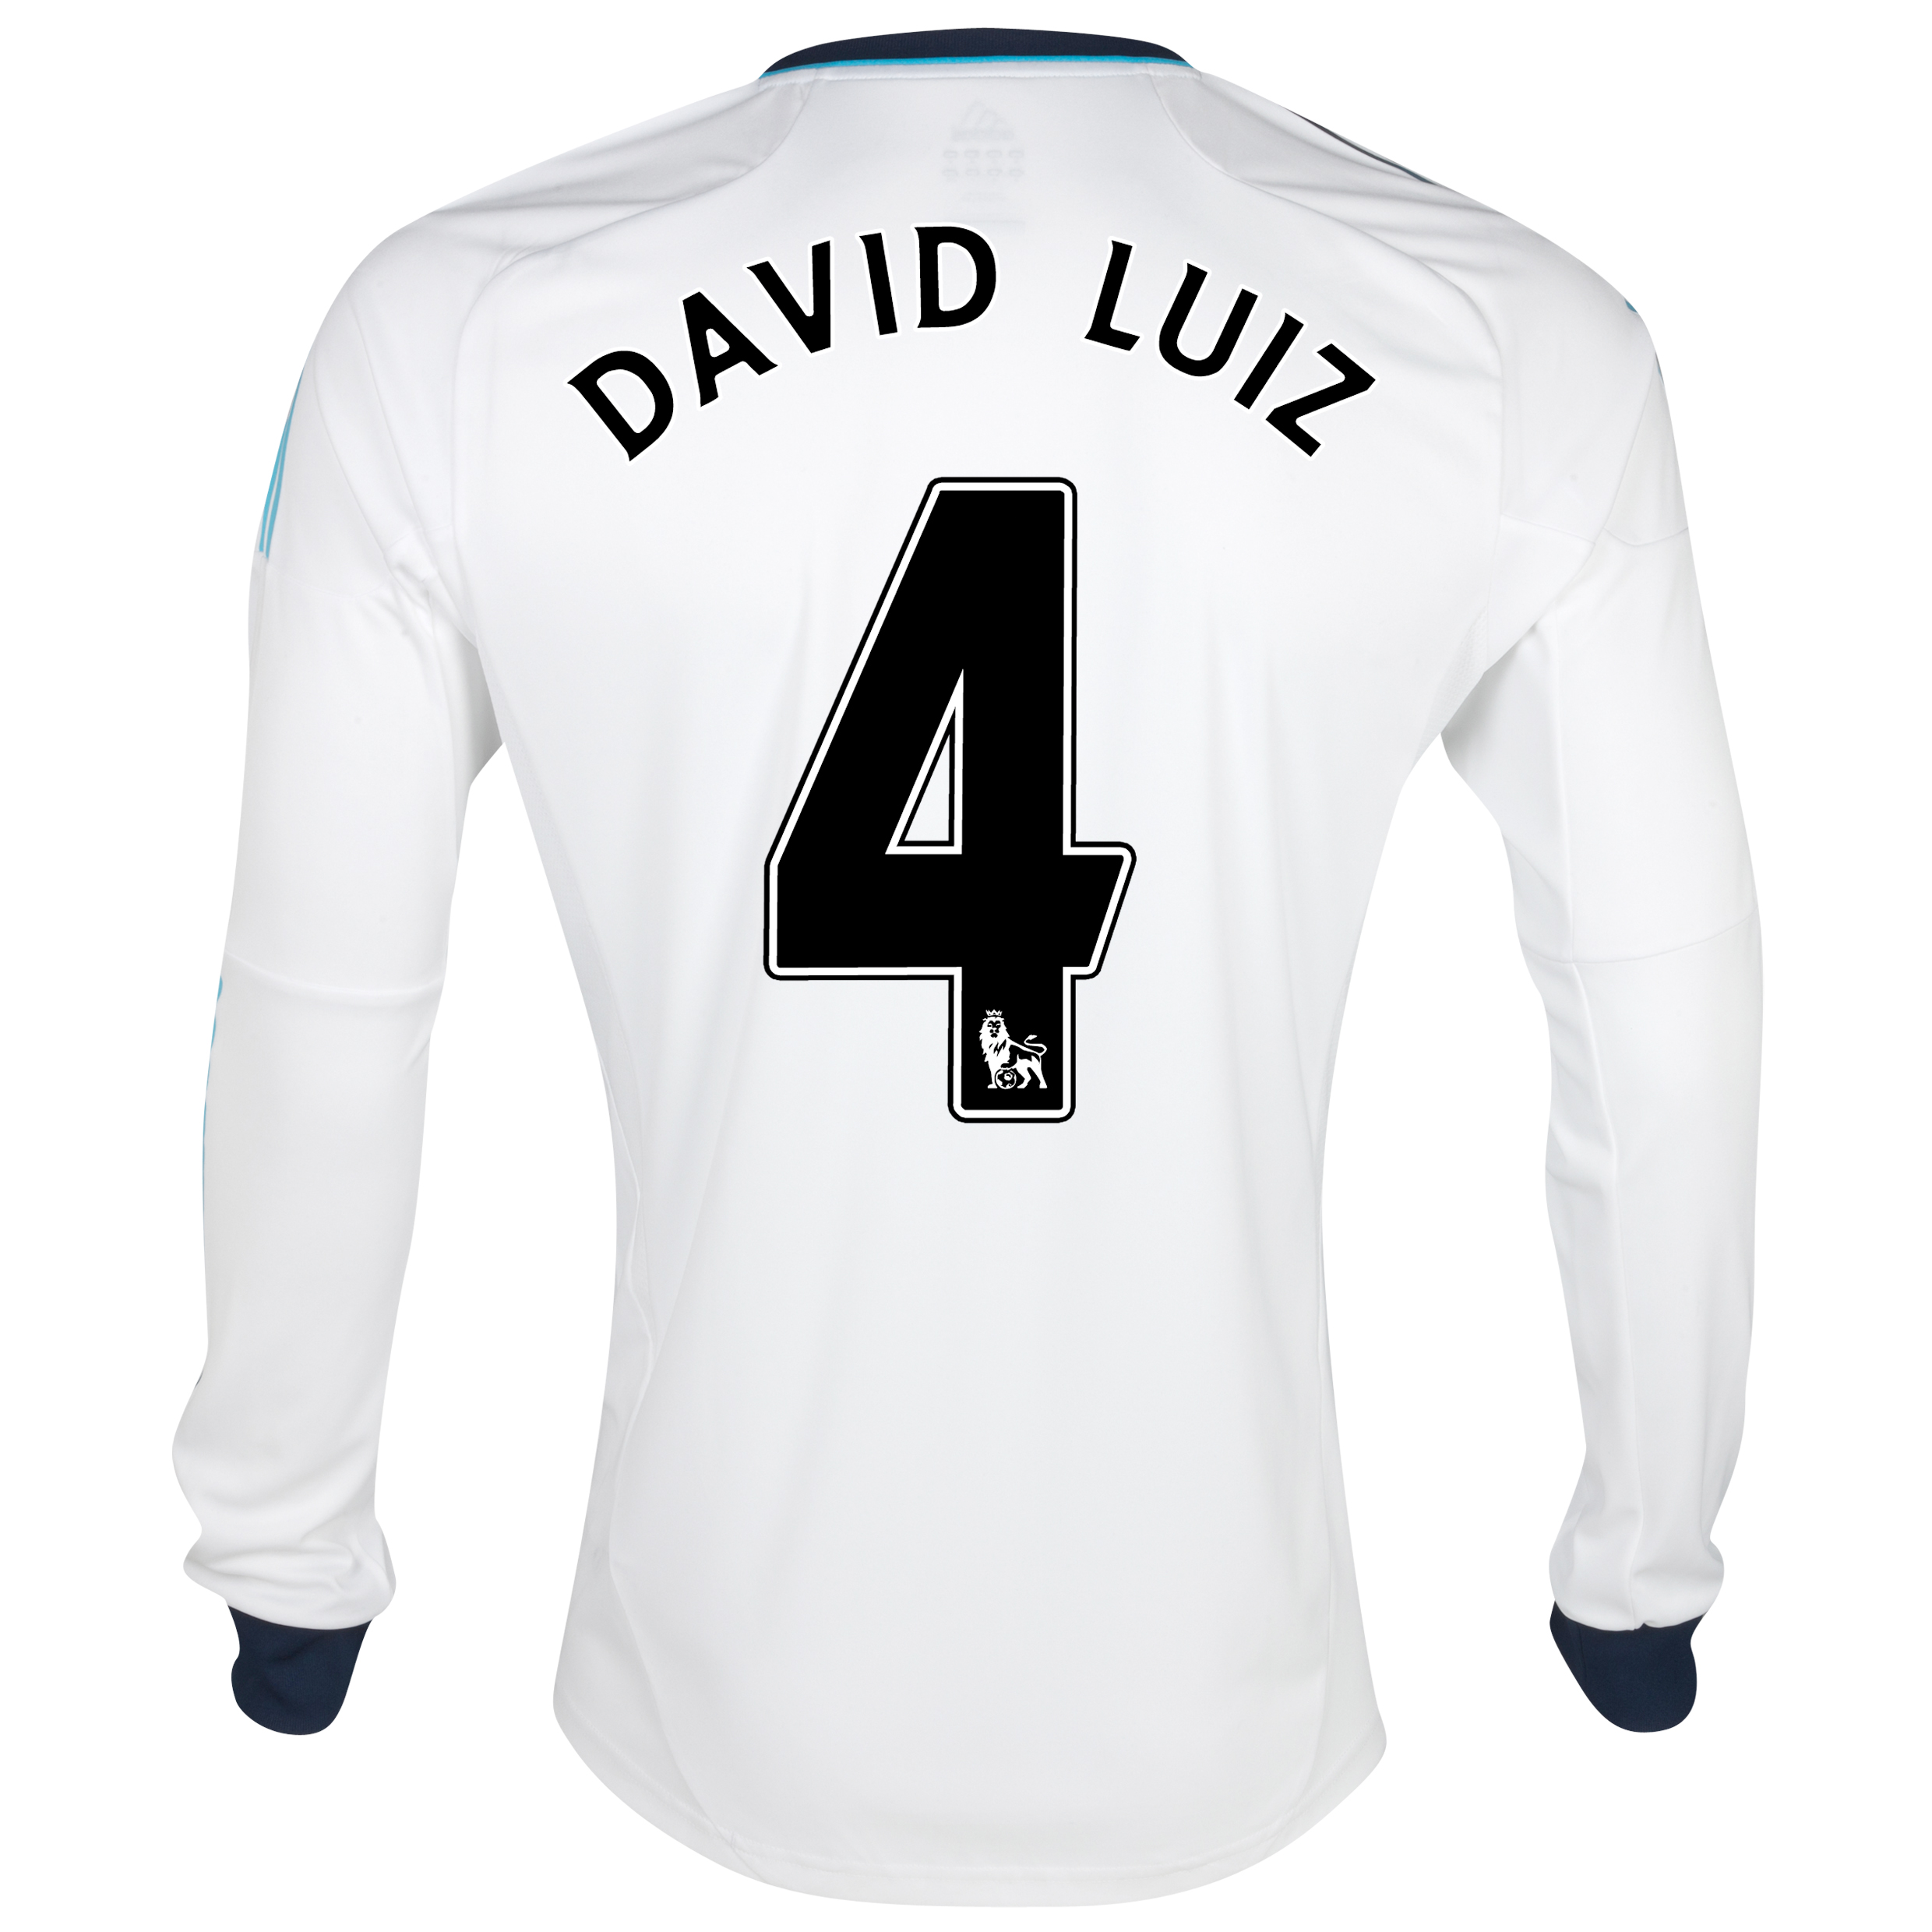 Chelsea Away Shirt 2012/13 - Long Sleeved - Kids with David Luiz 4 printing